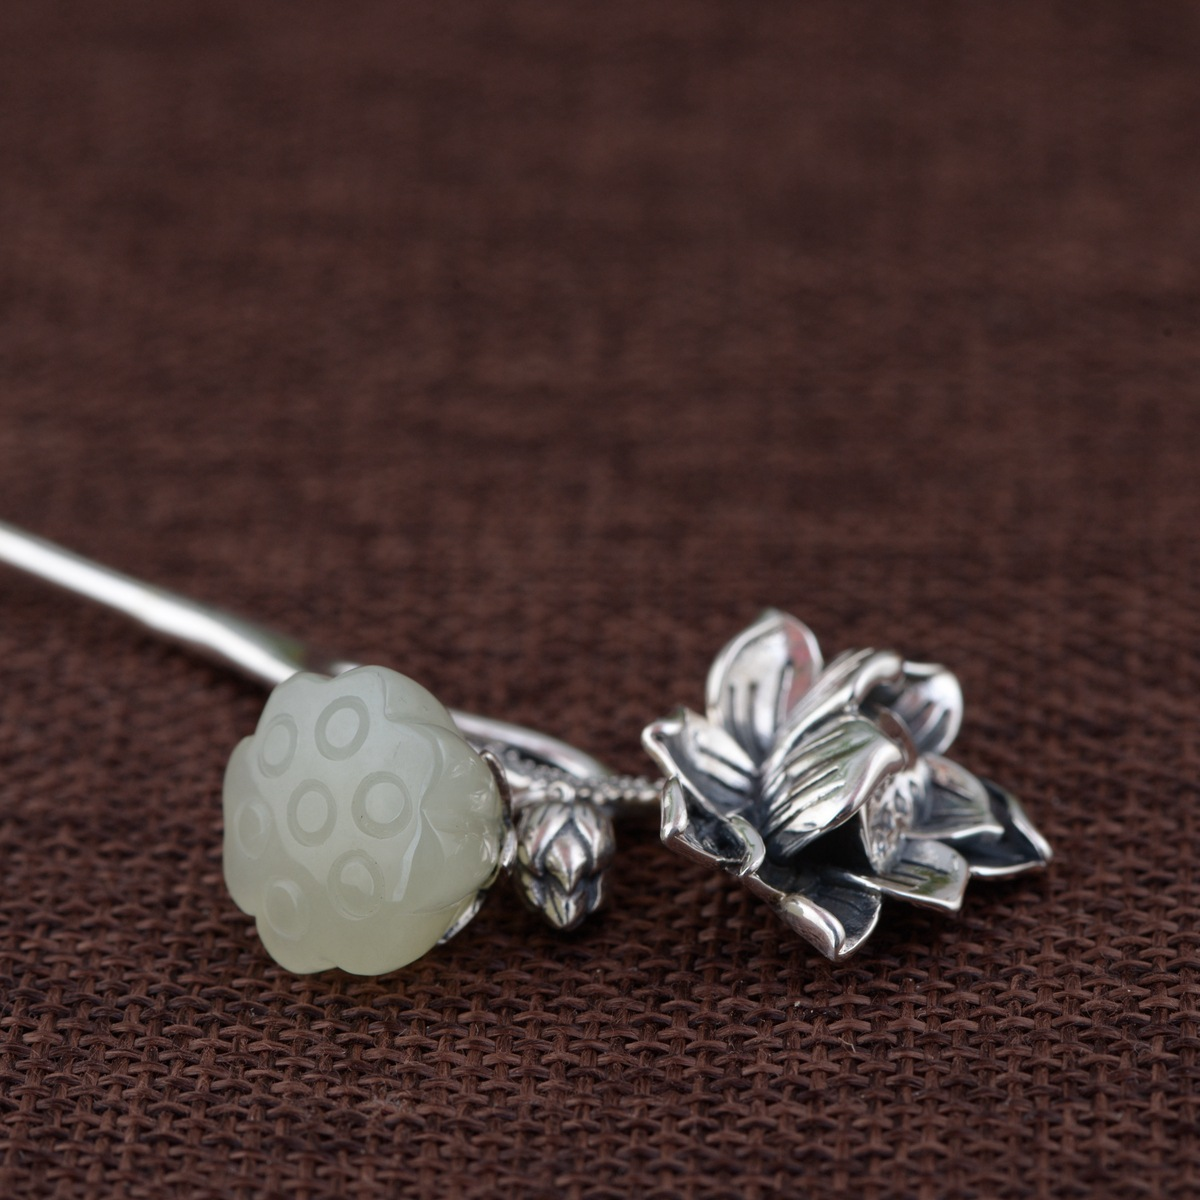 Jewelry & Accessories 2 Prong Carved Ebony Wooden Hair Stick Chinese Sticks Glazed Glass Flower Freshwater Pearl Jewelry Hair Accessories Wigo0964